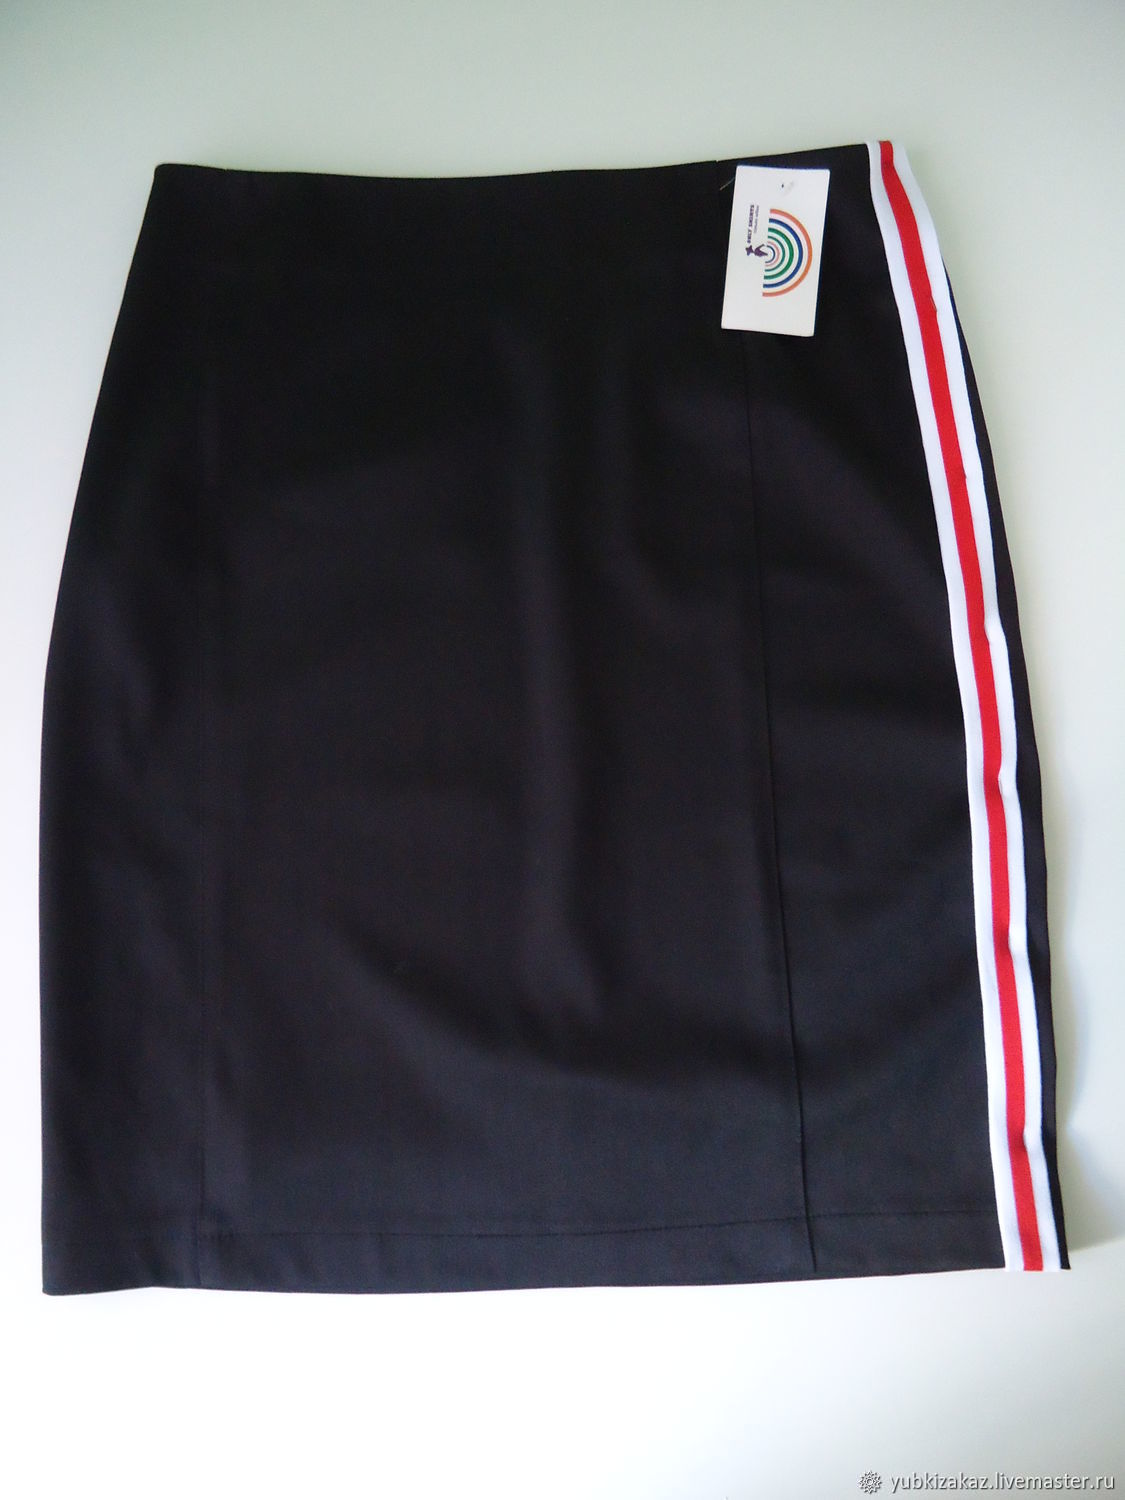 Skirt with stripes in the sports style, Skirts, Novosibirsk,  Фото №1